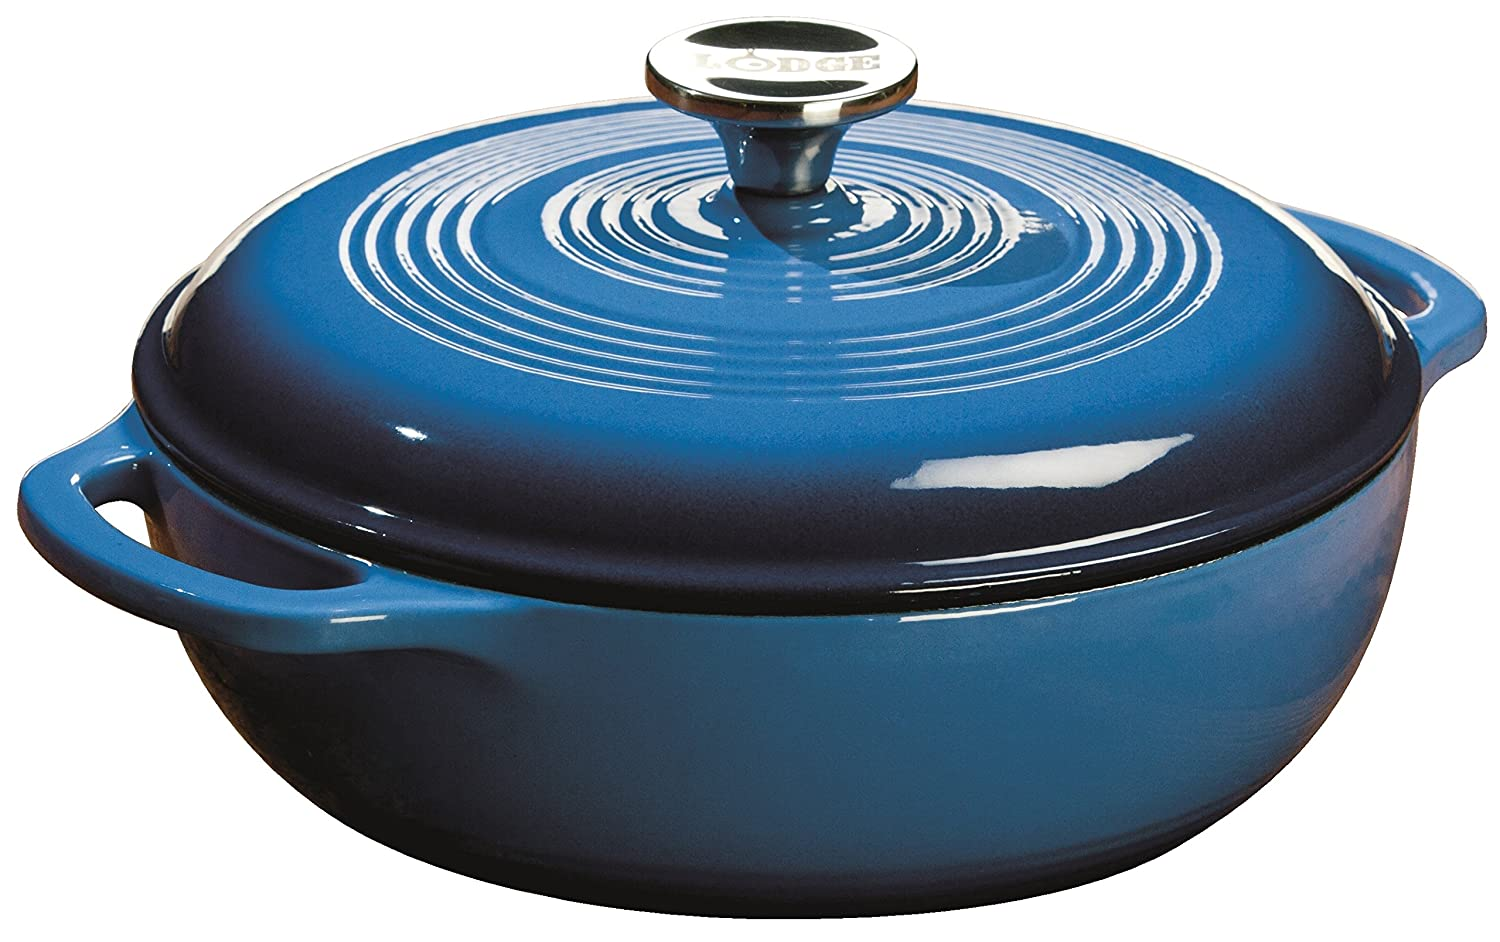 Lodge EC3D33 Enameled Cast Iron Dutch Oven, 3-Quart,Caribbean Blue